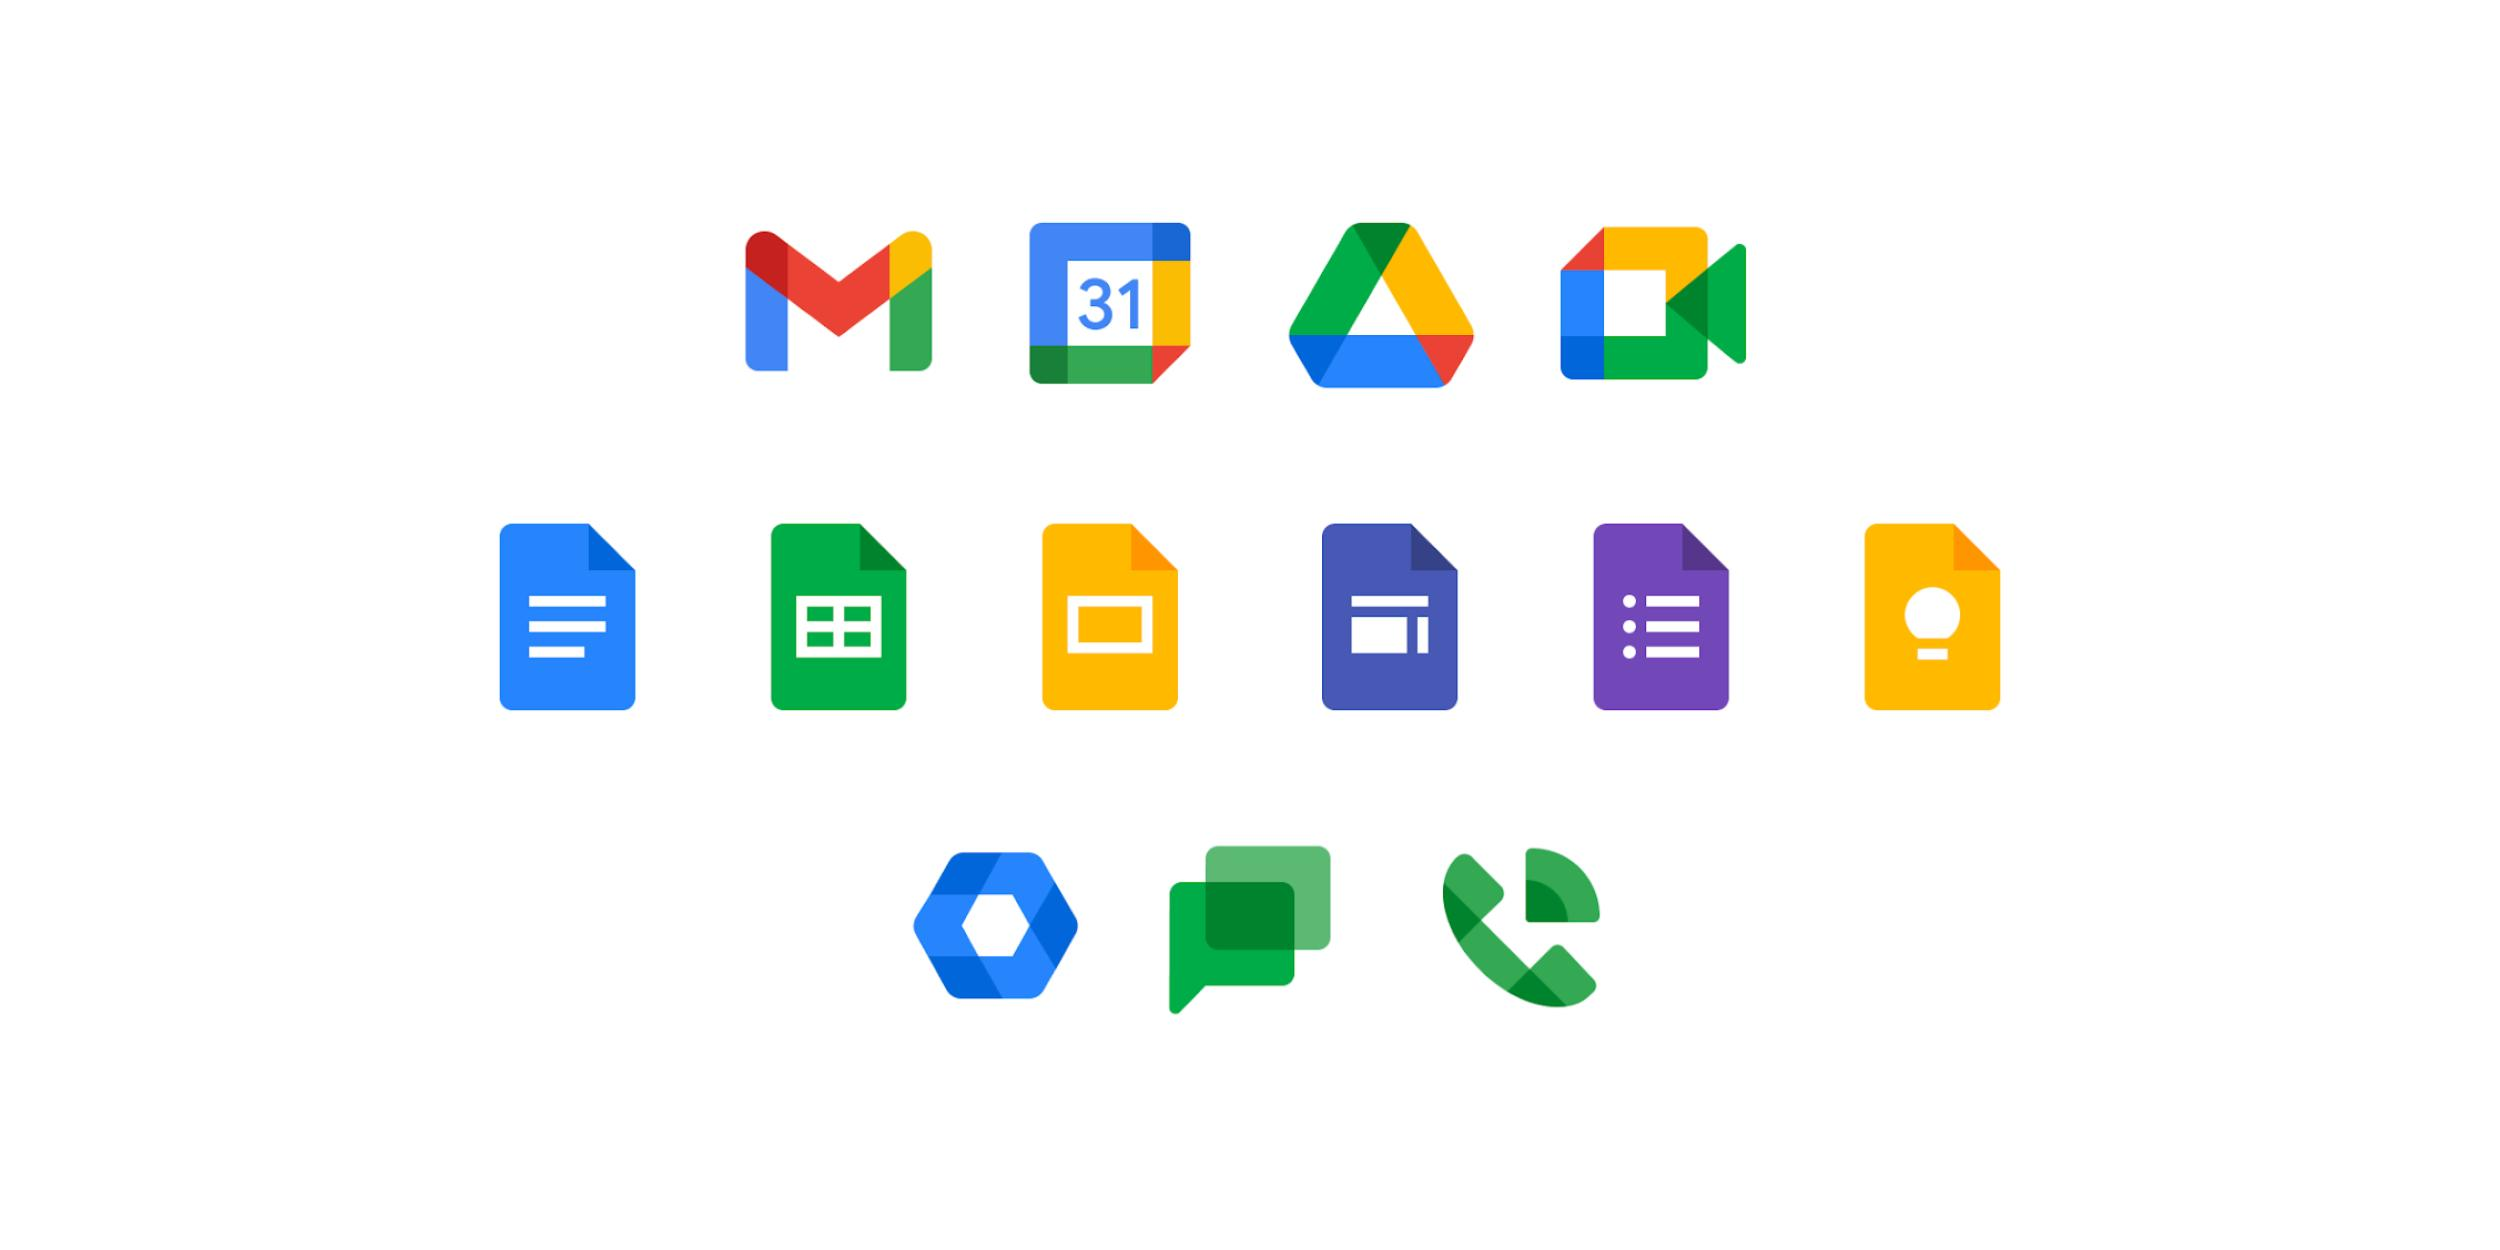 [Update: Complete] New Google Workspace icons rolled out — Drive, Gmail, Chat, Meet, Docs, Keep, Calendar, & Voice - 9to5Google